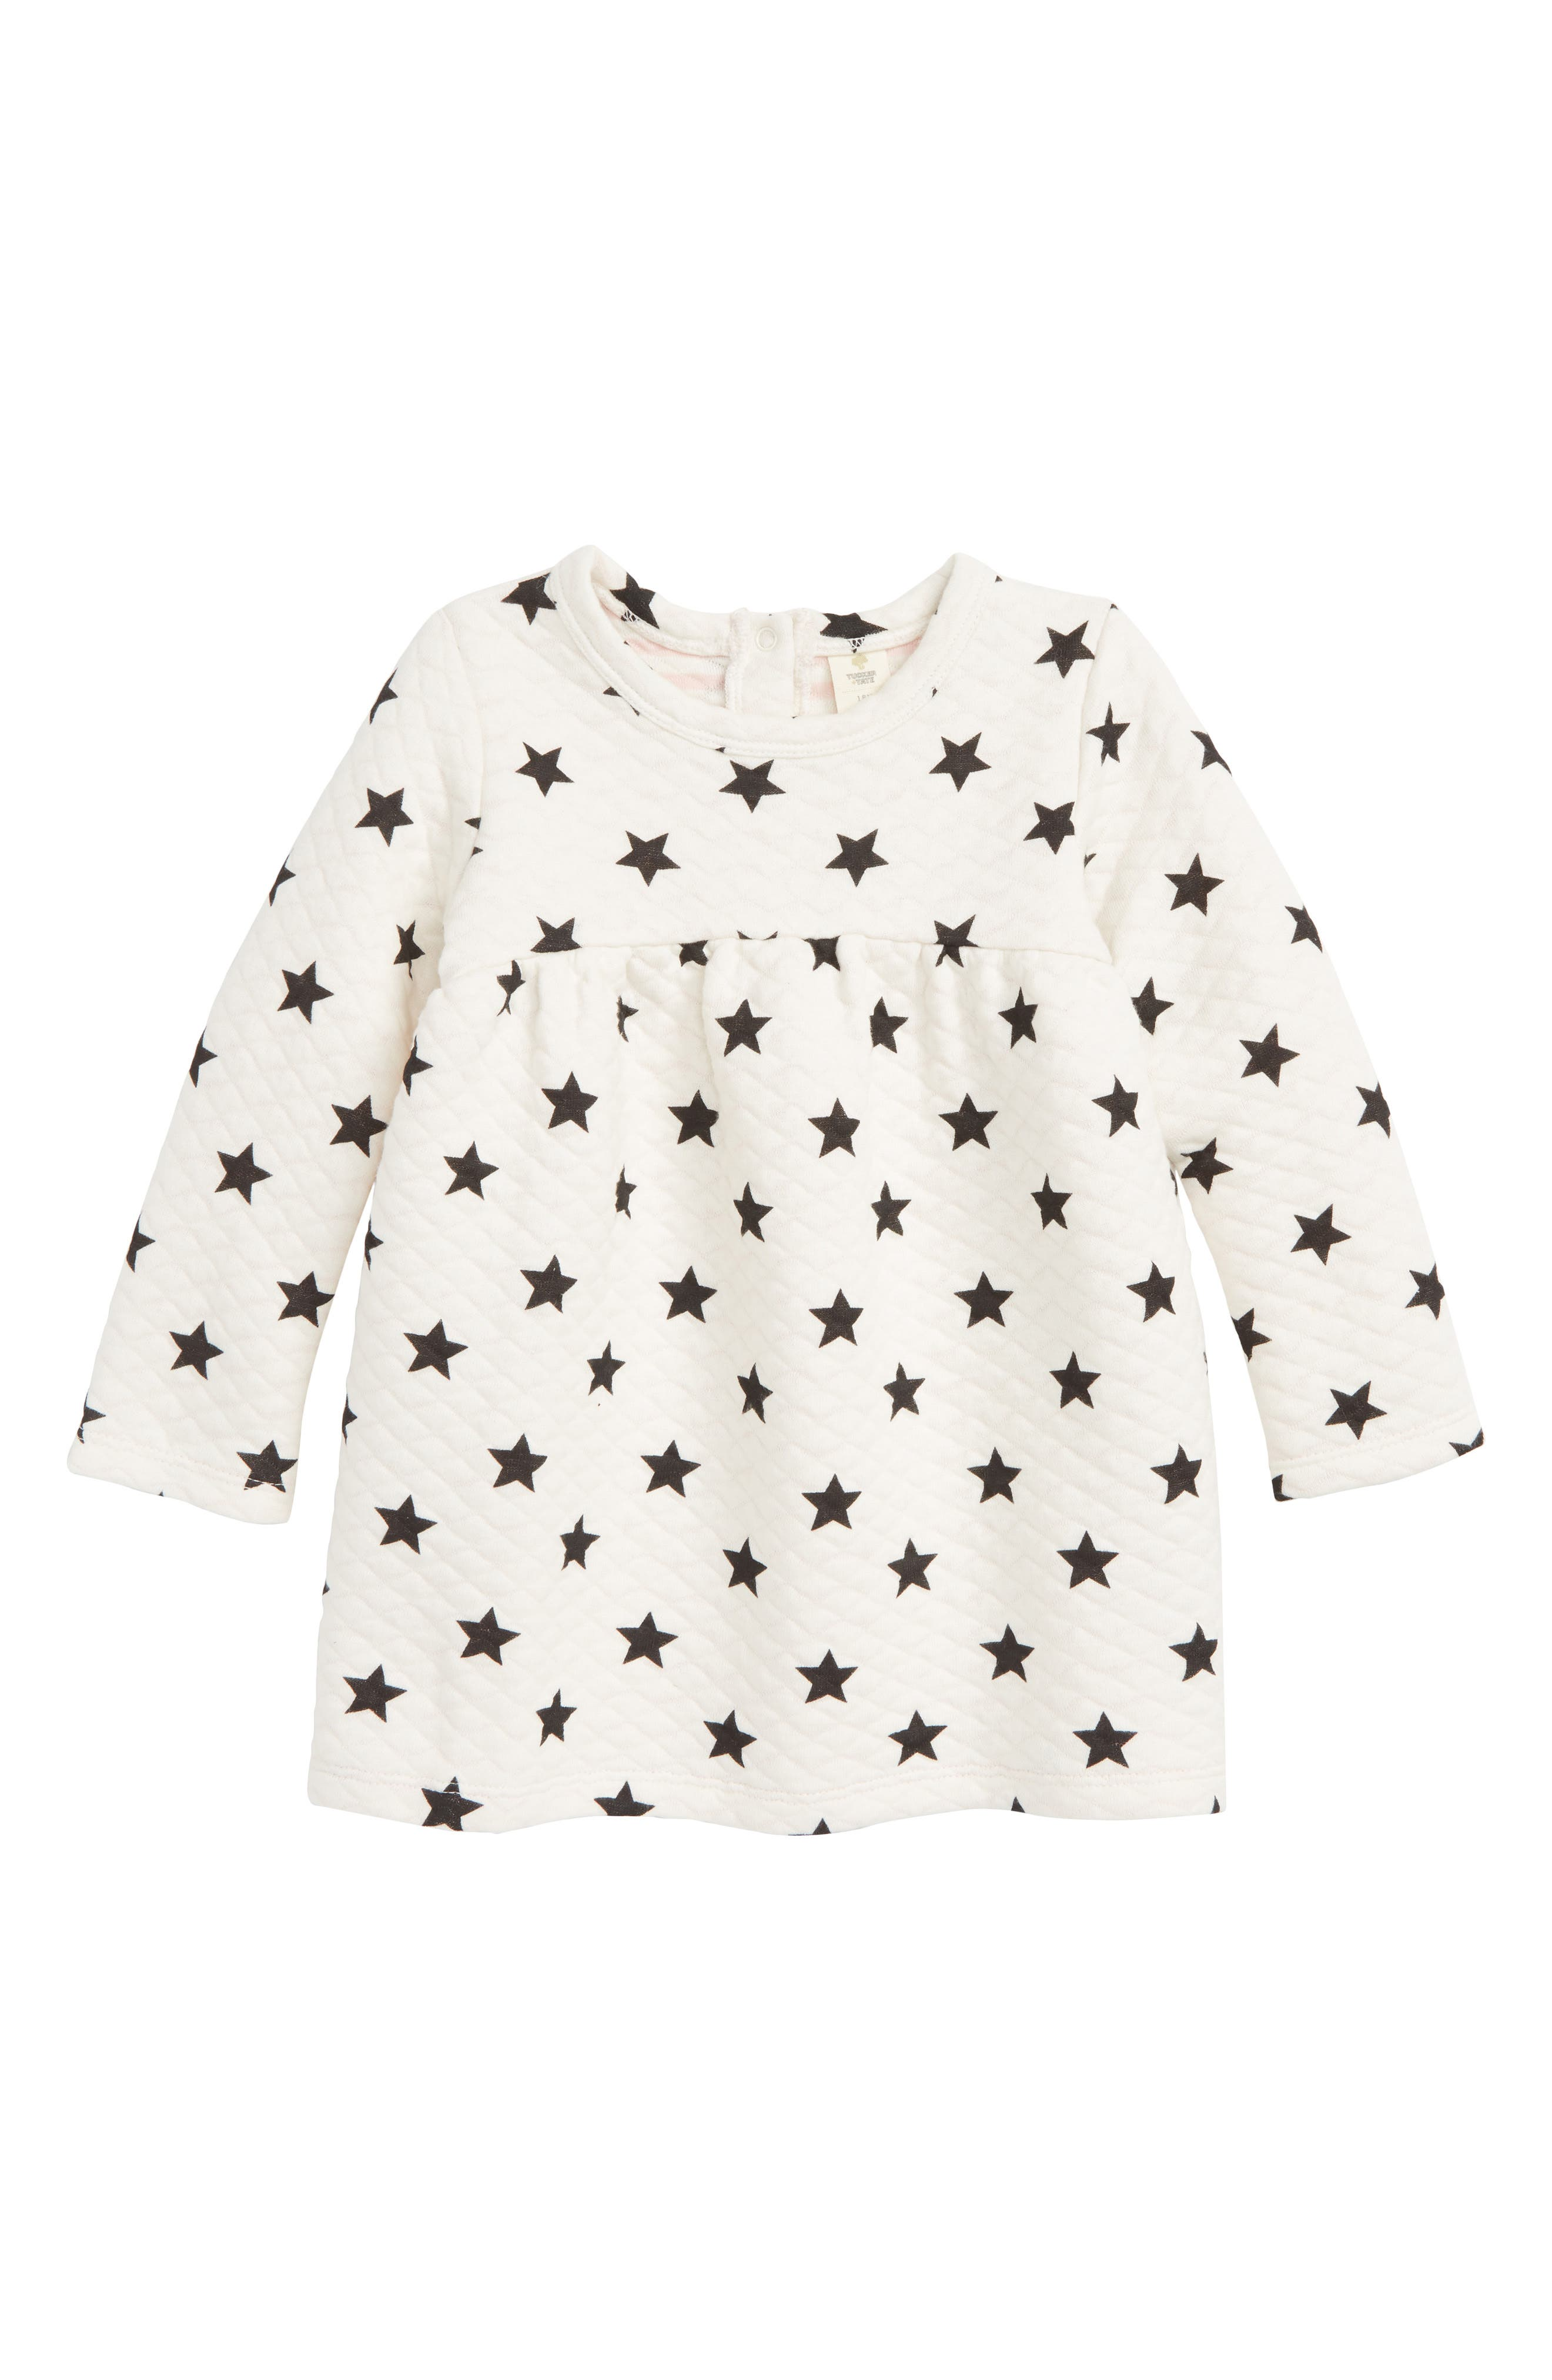 Star Quilted Dress,                             Main thumbnail 1, color,                             IVORY EGRET STARS